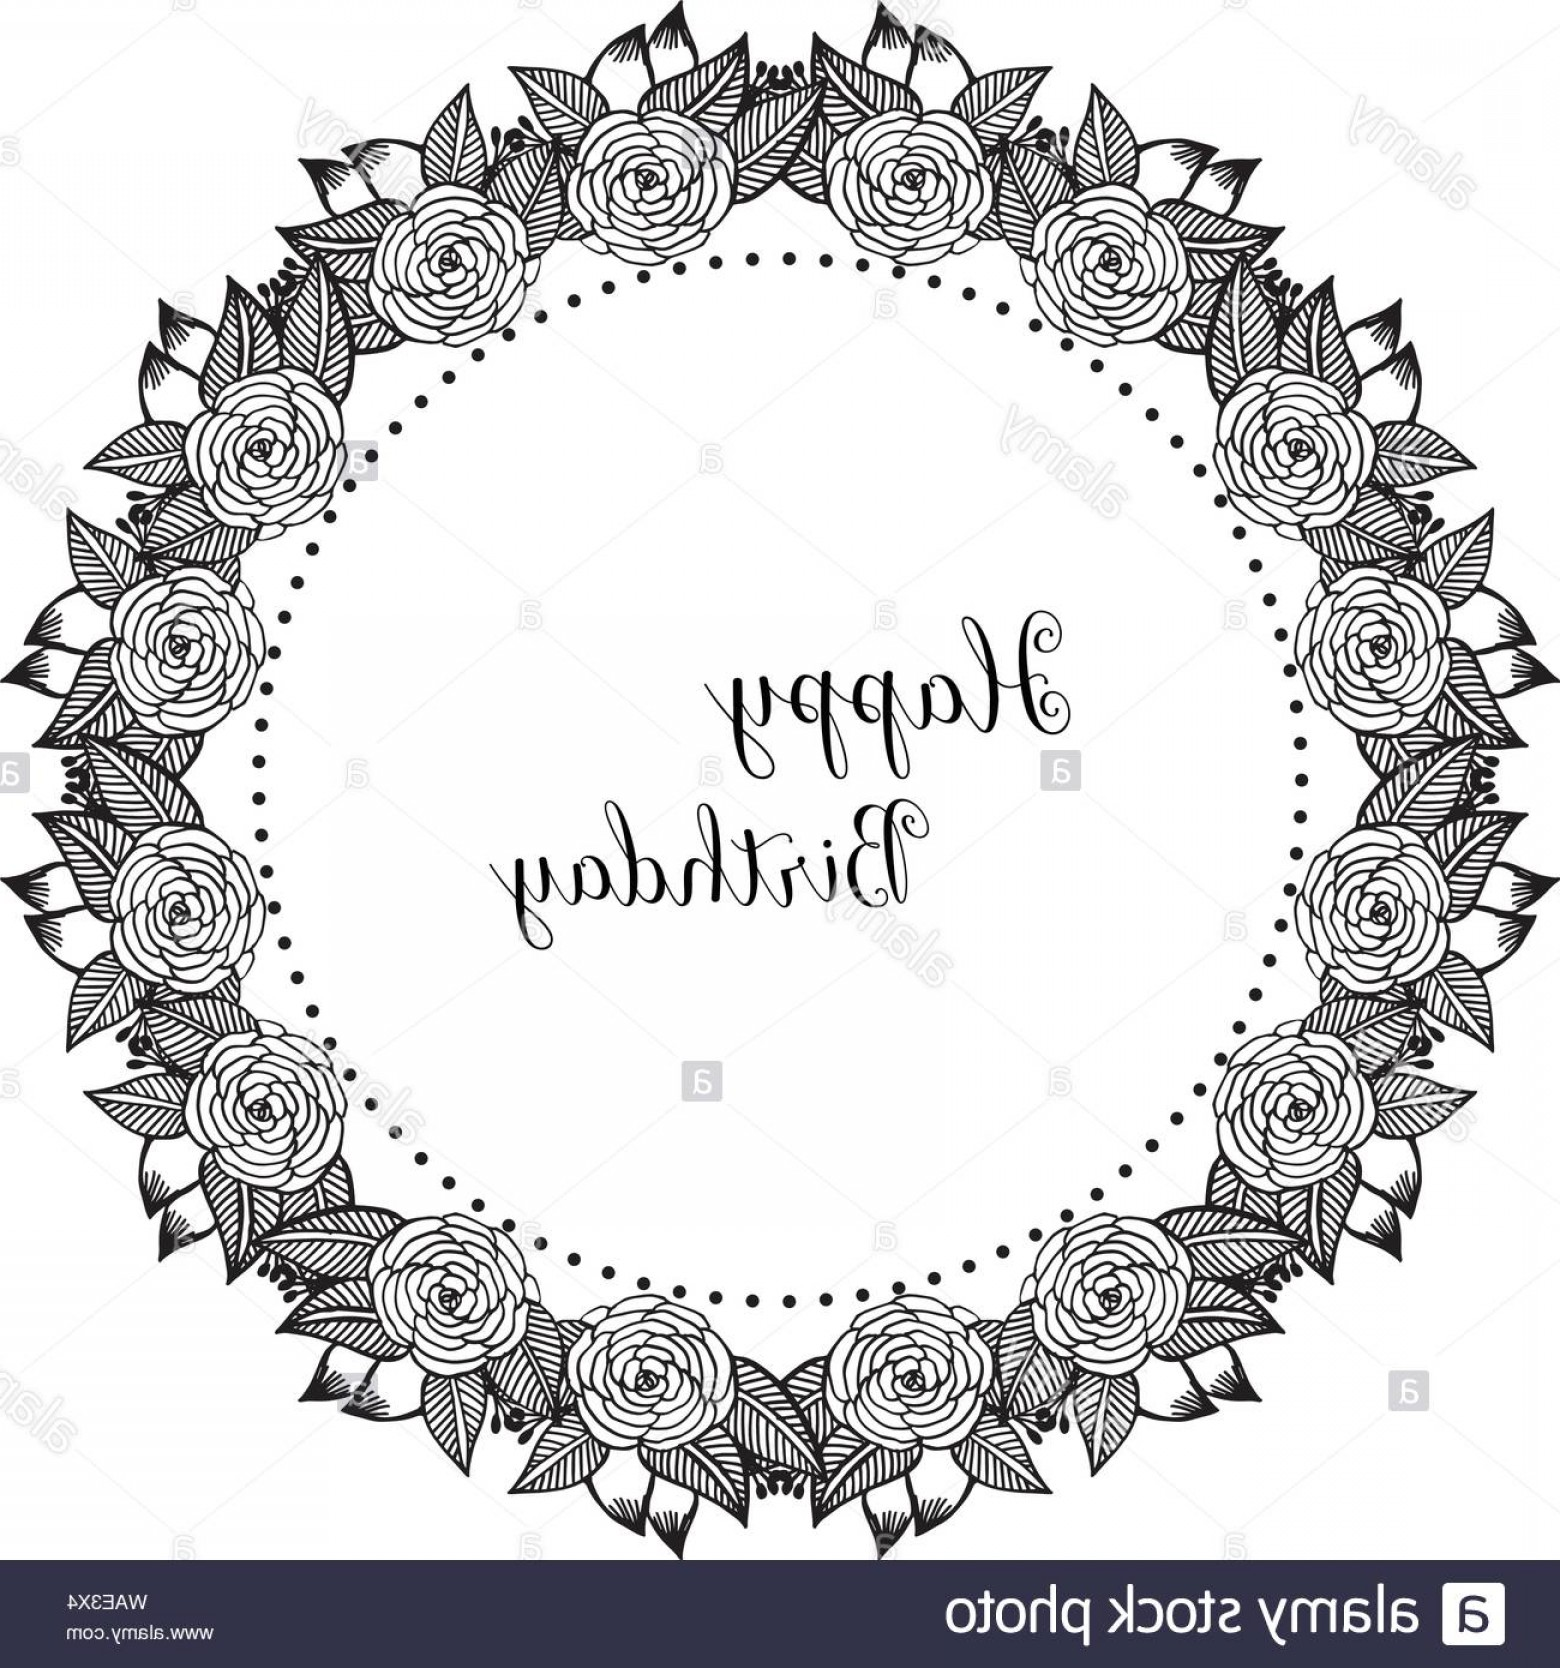 Happy Birthday Vector Art Backdrop: Drawing Unique Flower Frame Isolated On A White Backdrop For Background Of Card Happy Birthday Vector Illustration Image